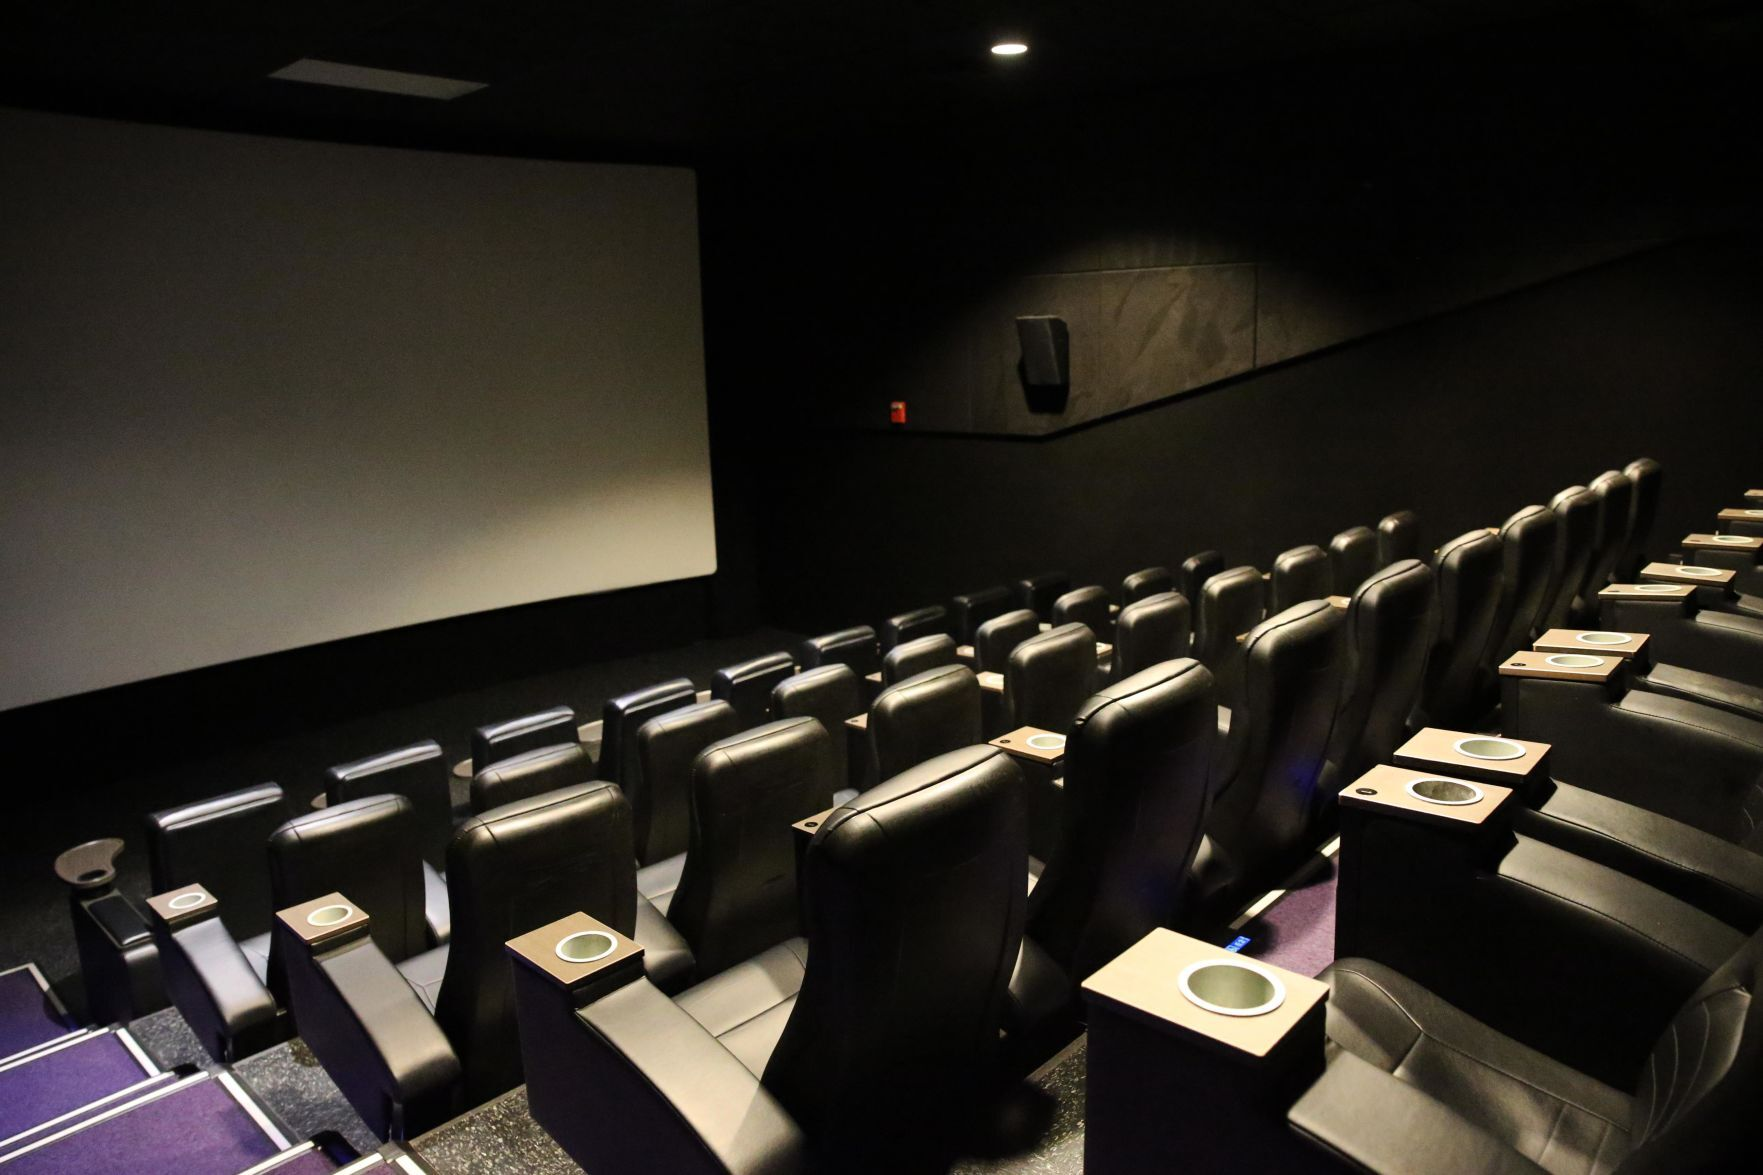 Rio Regal Regal Theater At Stonefield To Temporarily Shut Down; Other Cinemas Offering Private Screenings | Local News | Dailyprogress.com